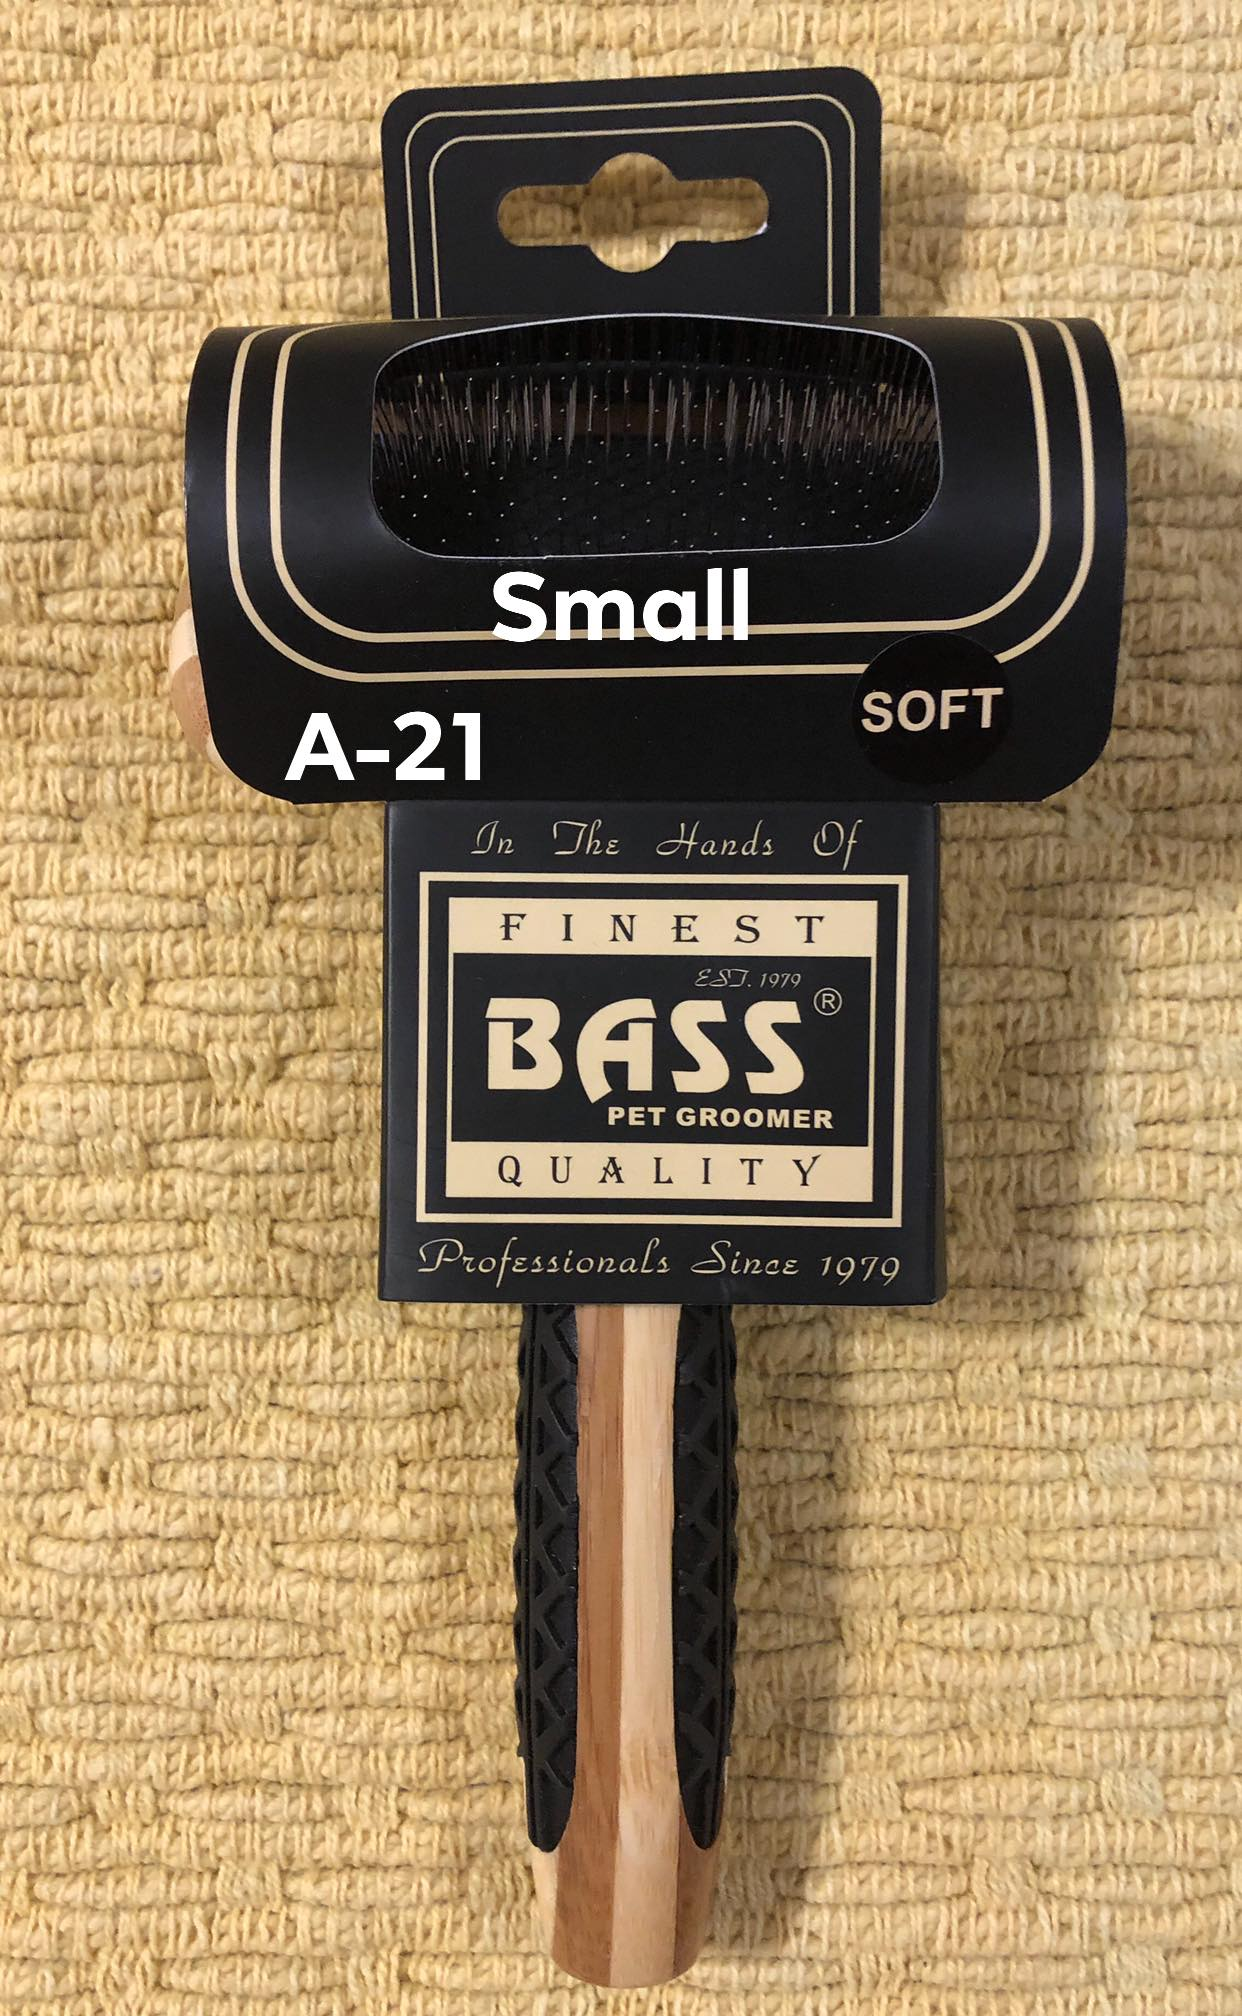 Bass A-21 Small Wet/Dry Bamboo Soft Slicker